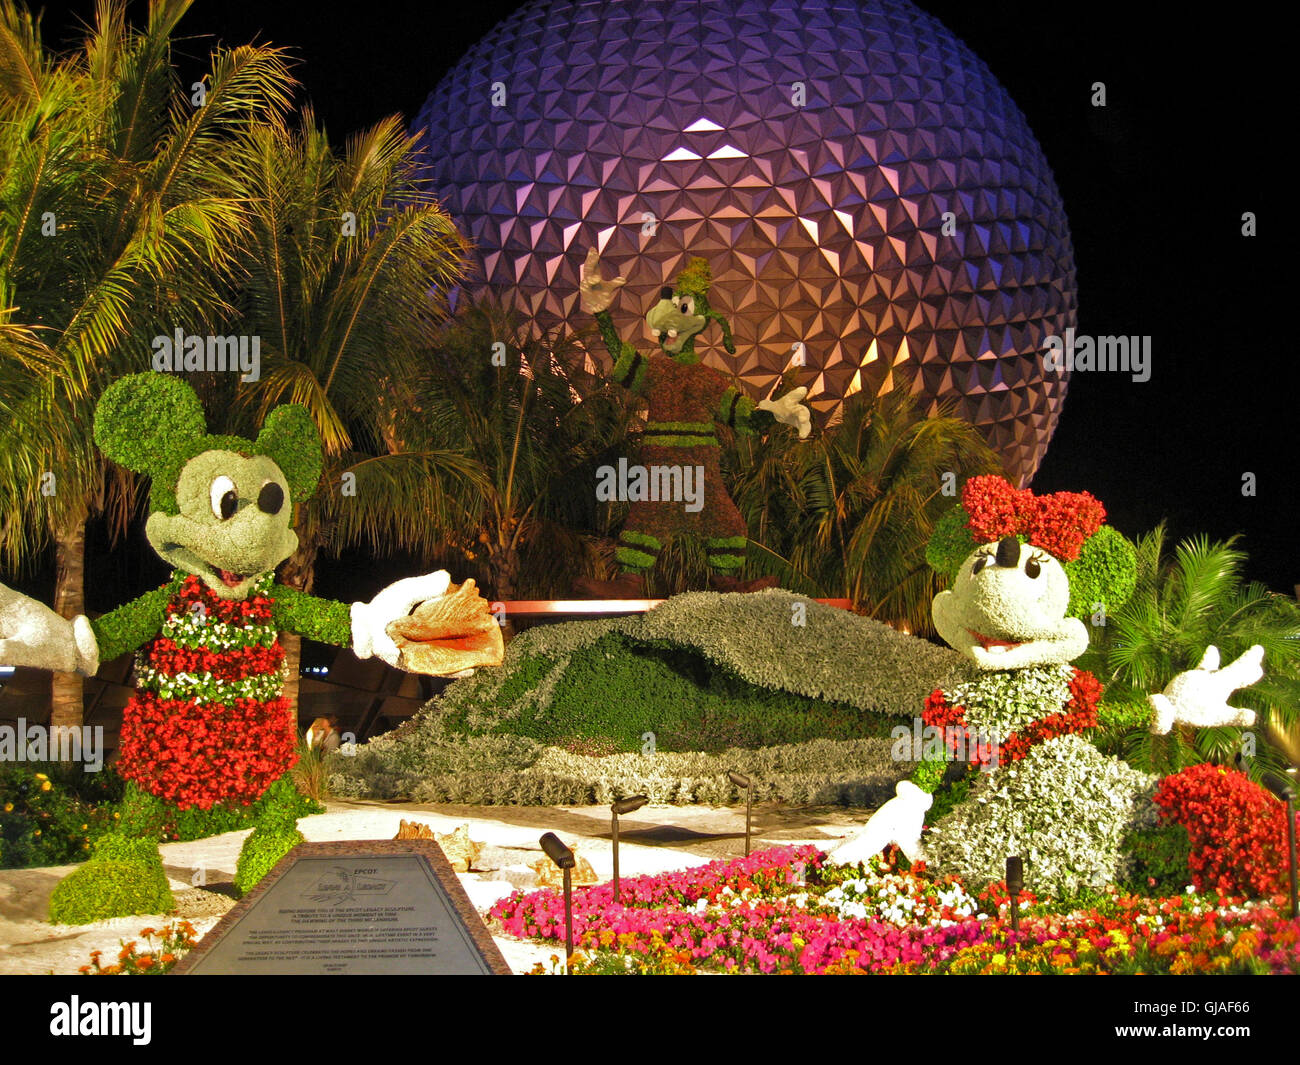 Epcot Flower And Garden Show Stock Photos & Epcot Flower And Garden ...